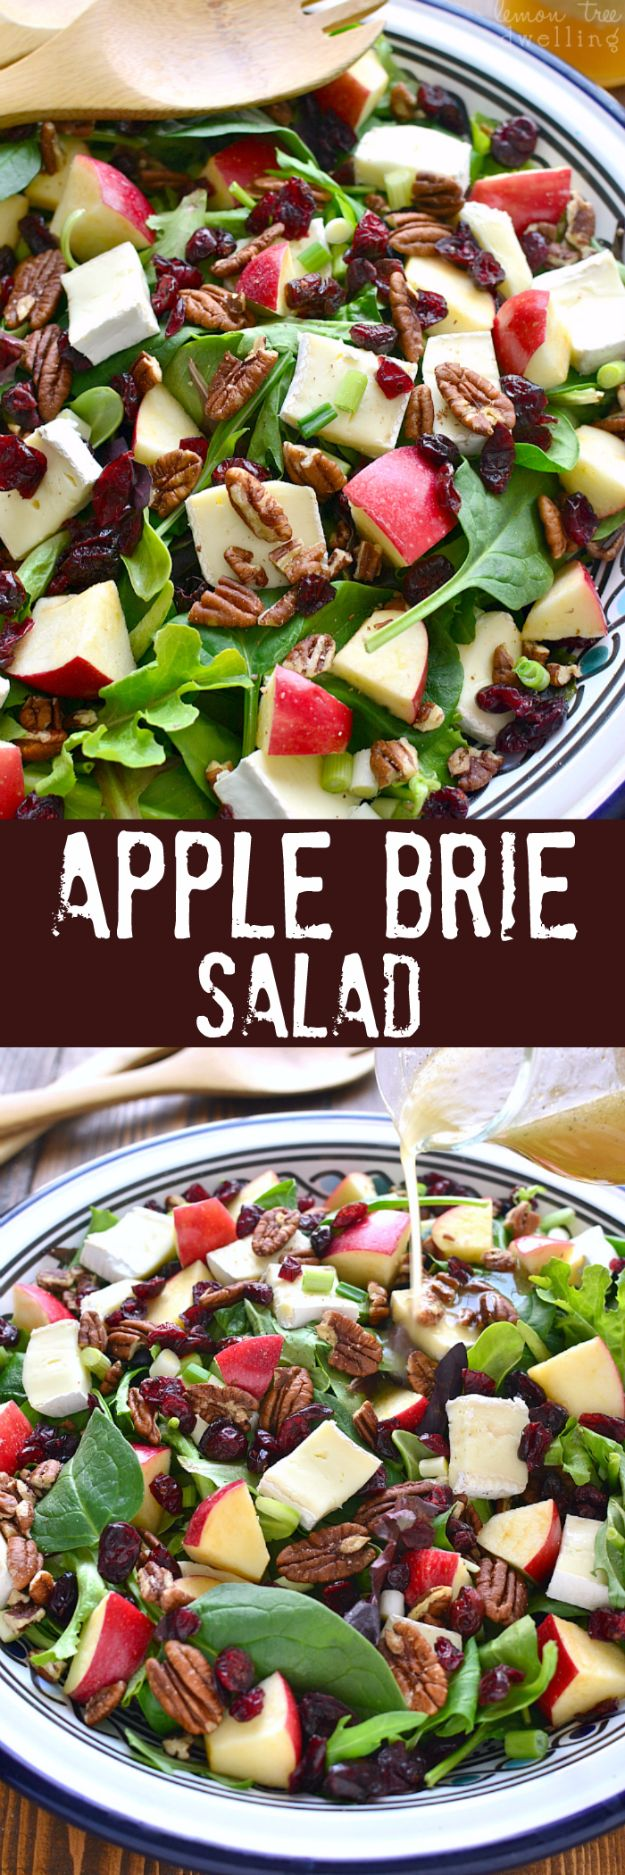 Best Dinner Salad Recipes Apple Brie Salad Easy Salads To Make For Quick And